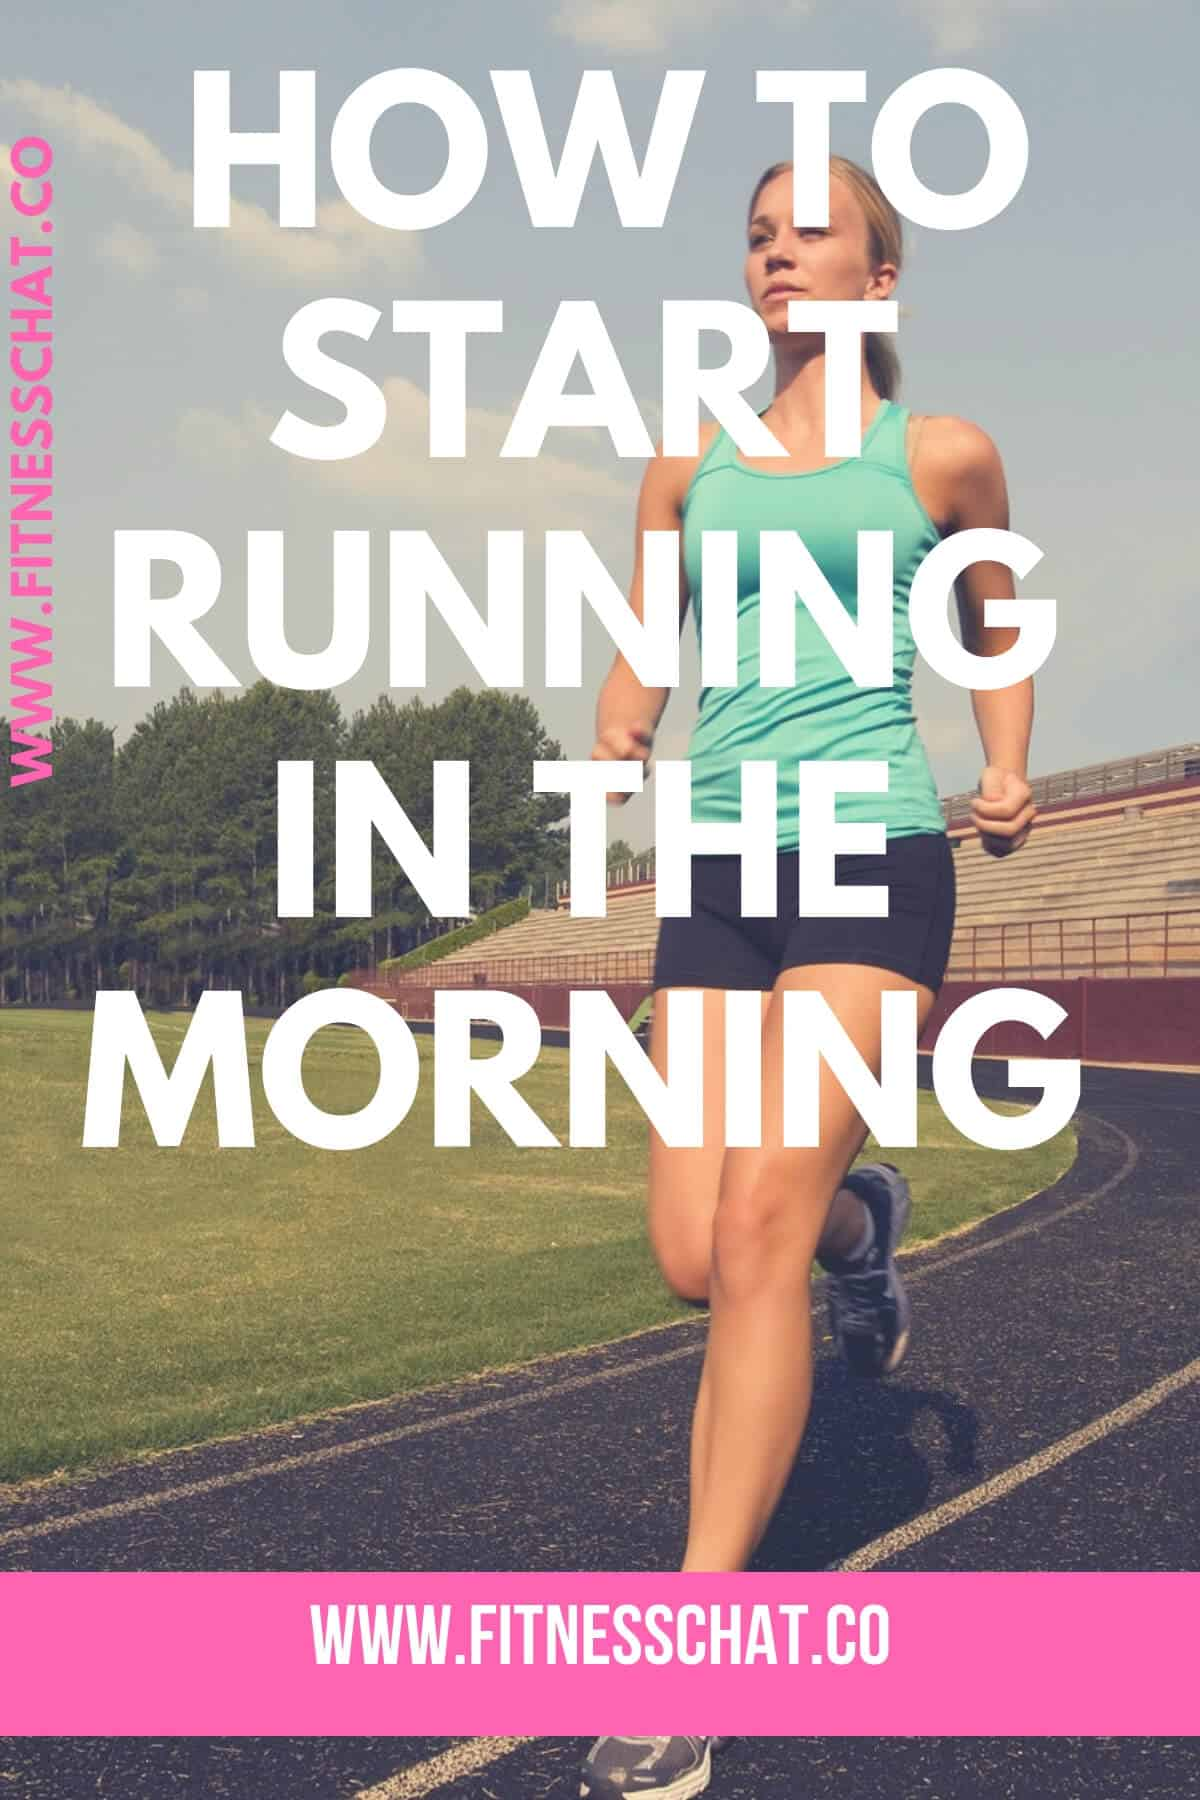 HOW TO START RUNNING IN THE MORNING